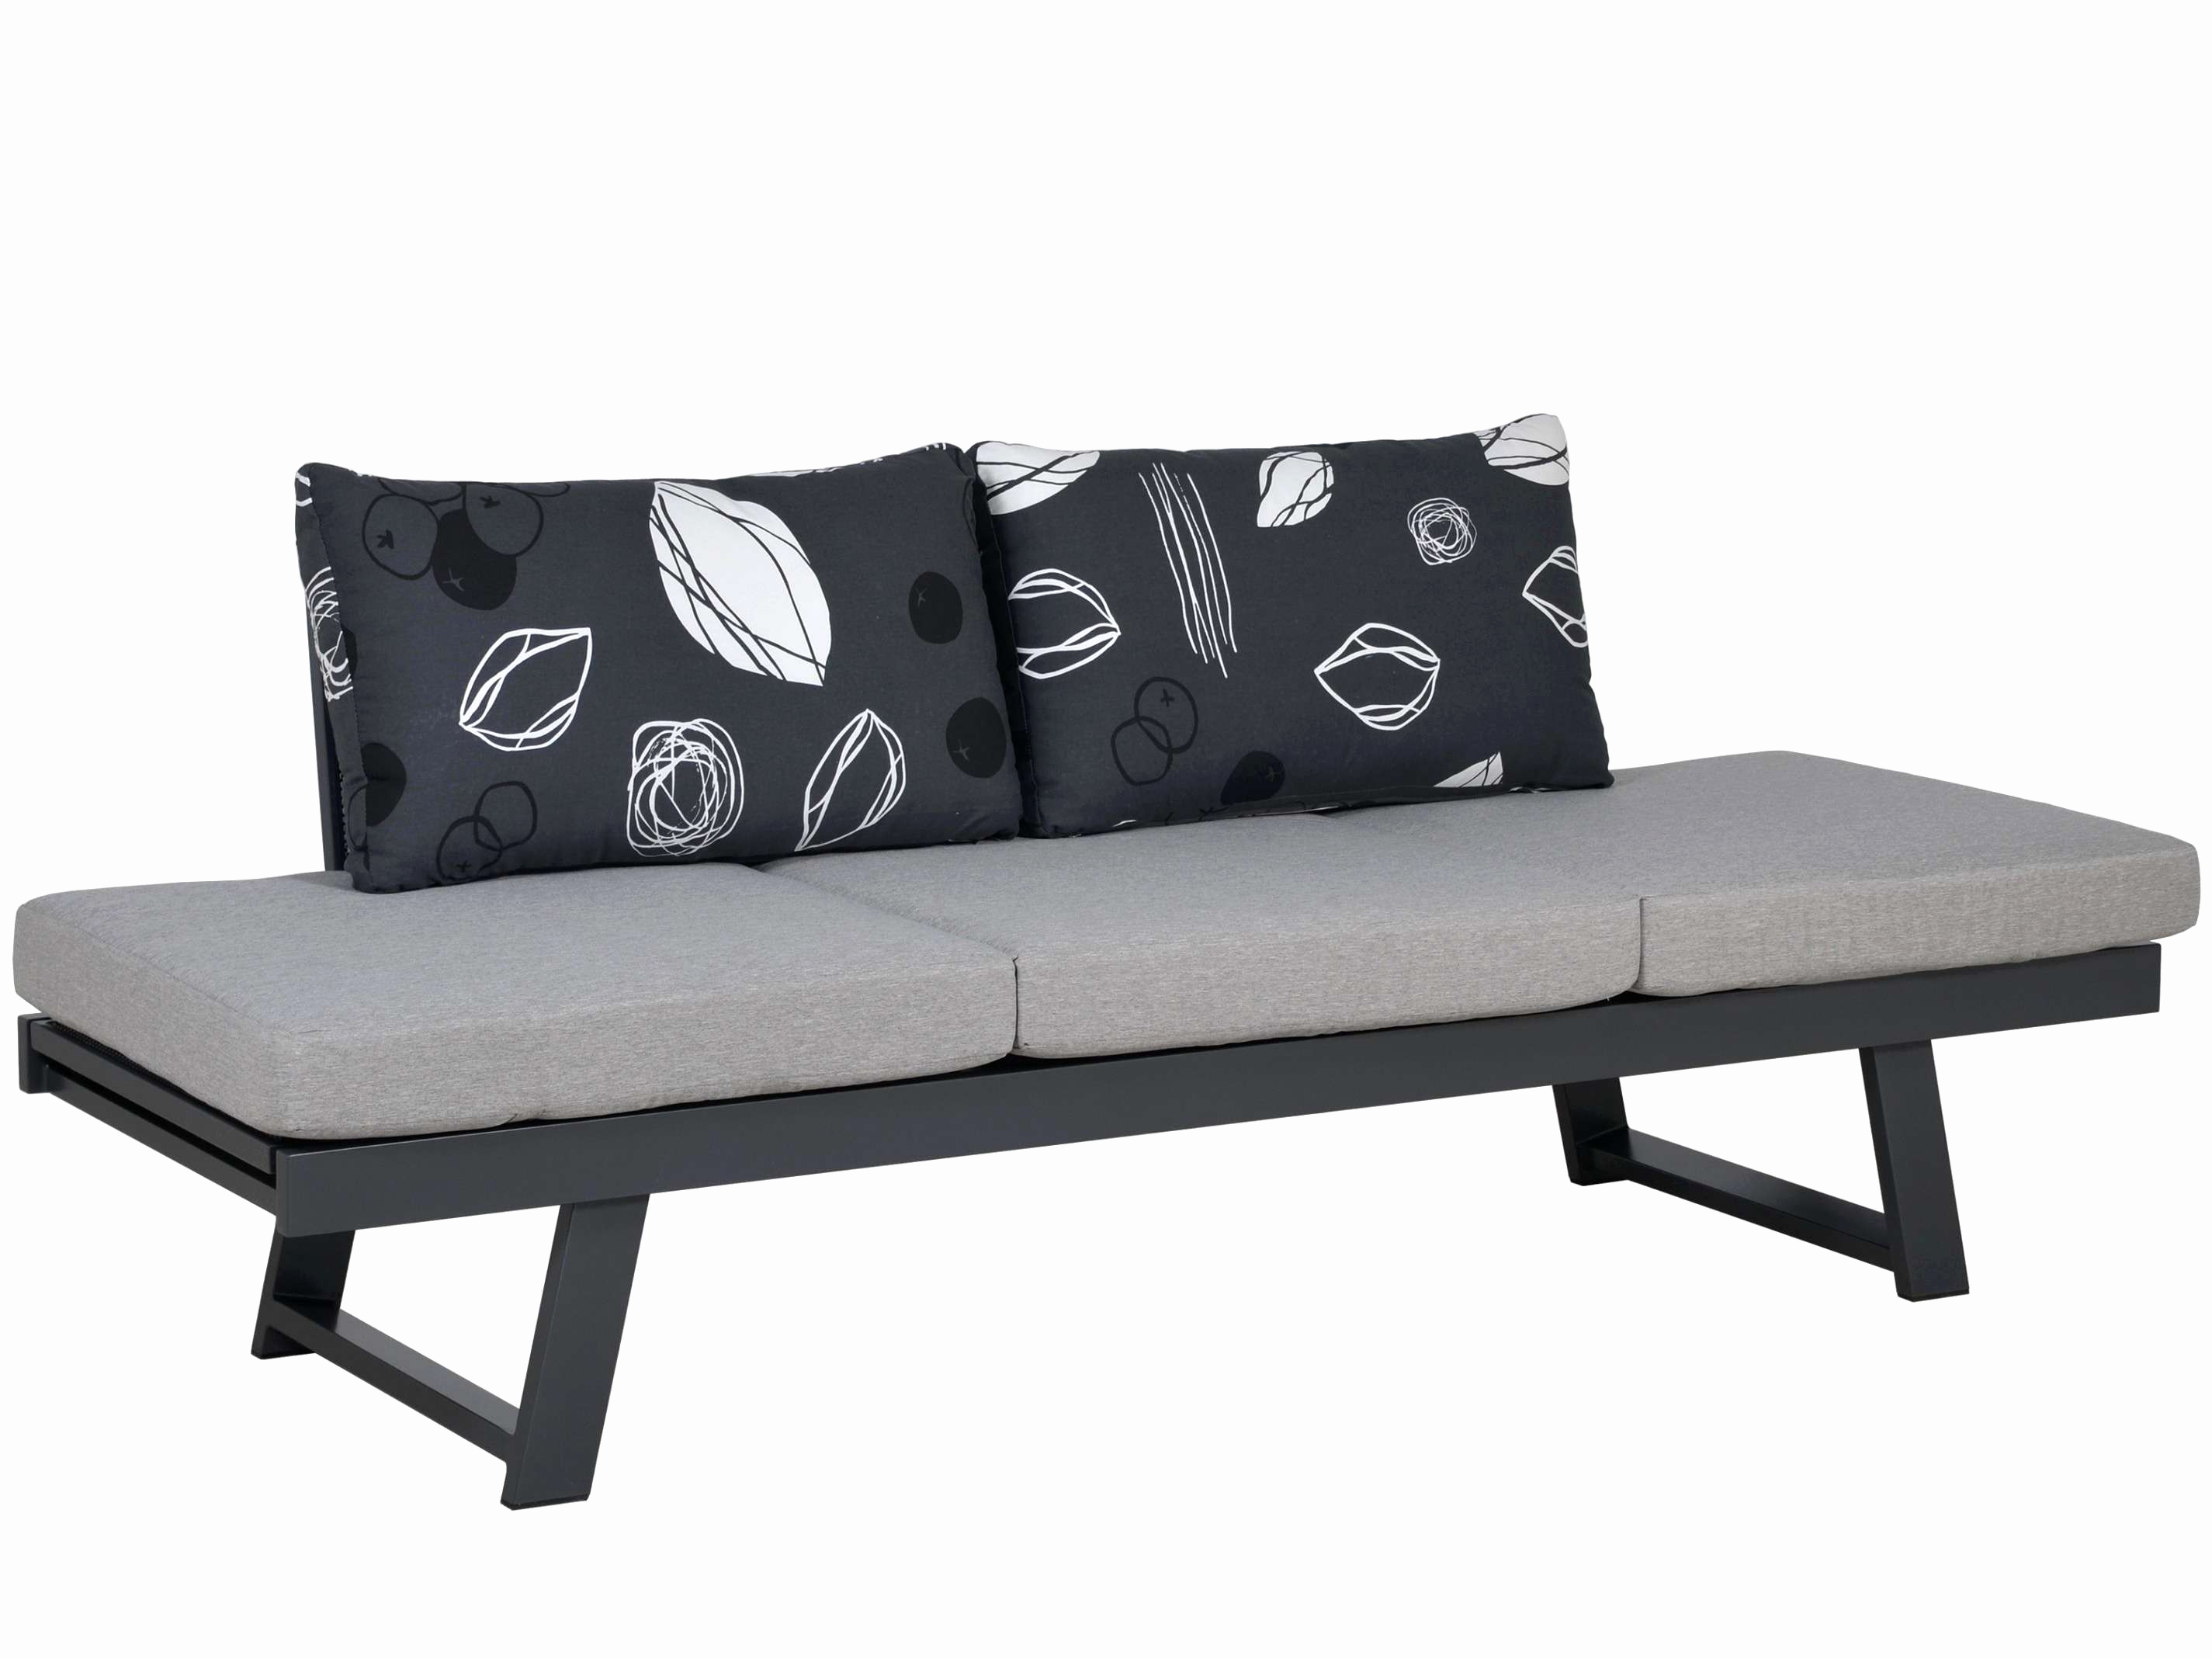 Ikea Big sofa Luxus Genial Ikea Hot Dog